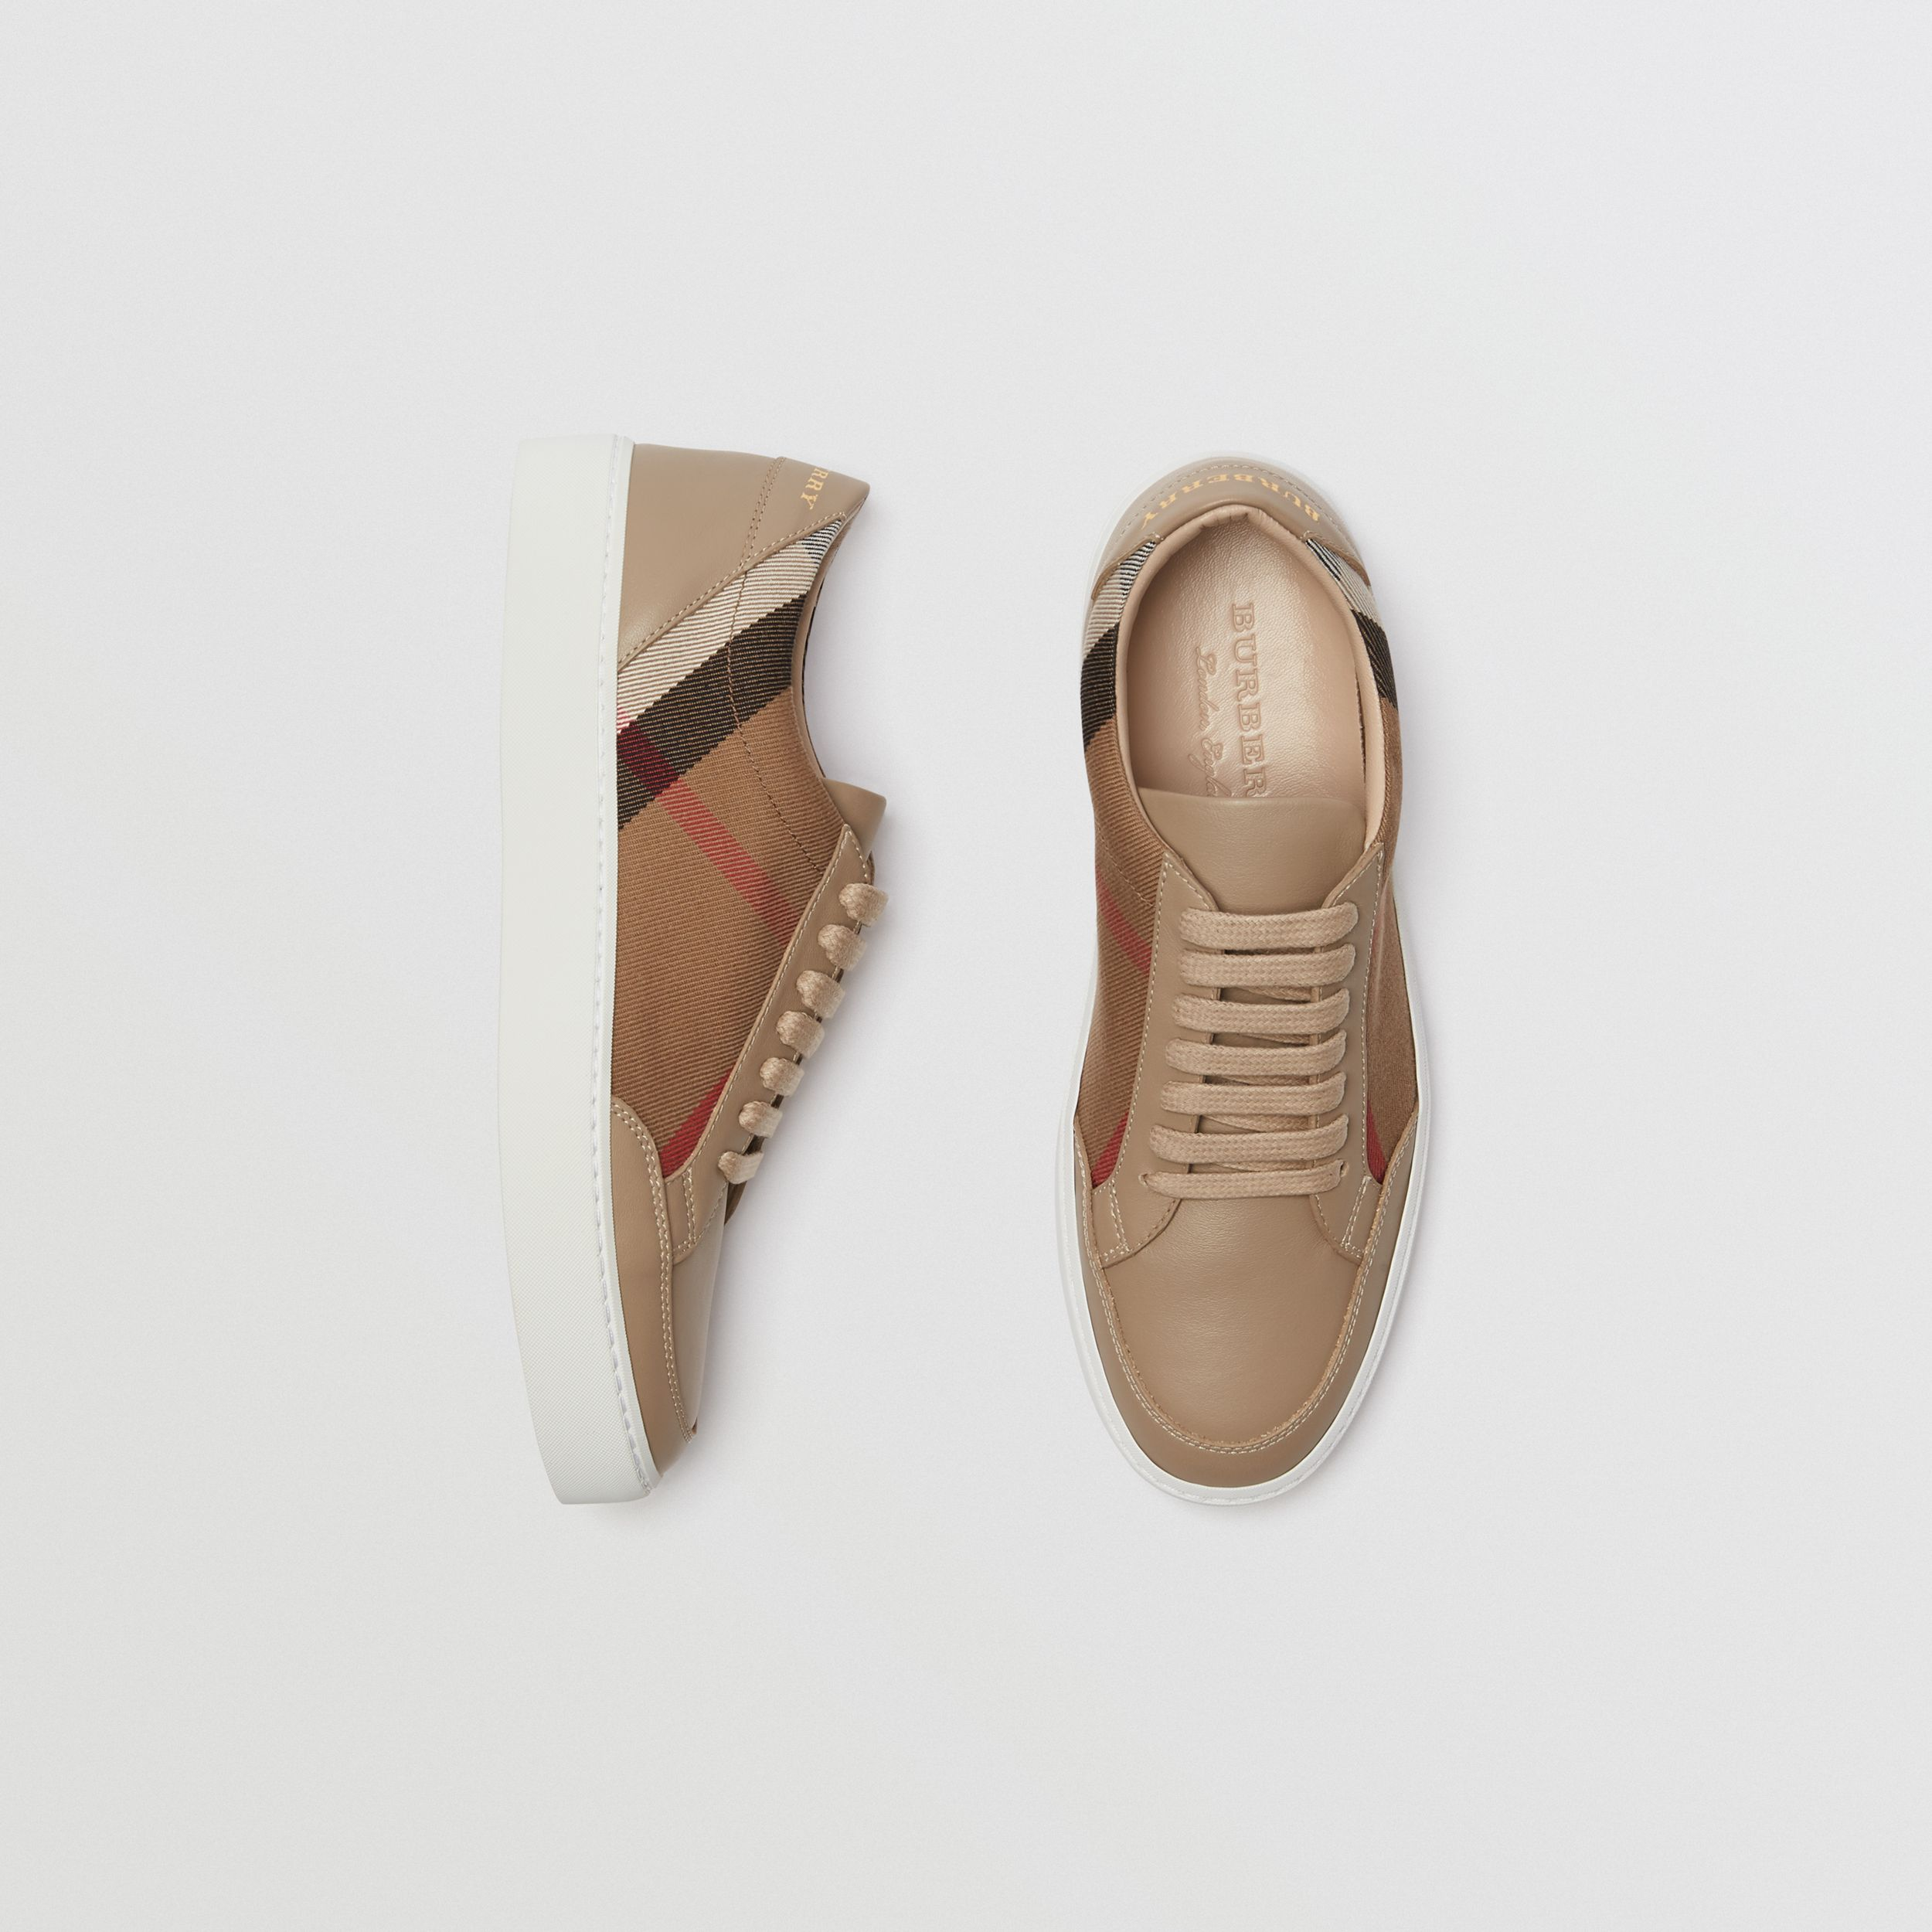 Check Detail Leather Sneakers in House Check/ Nude - Women | Burberry United Kingdom - 1